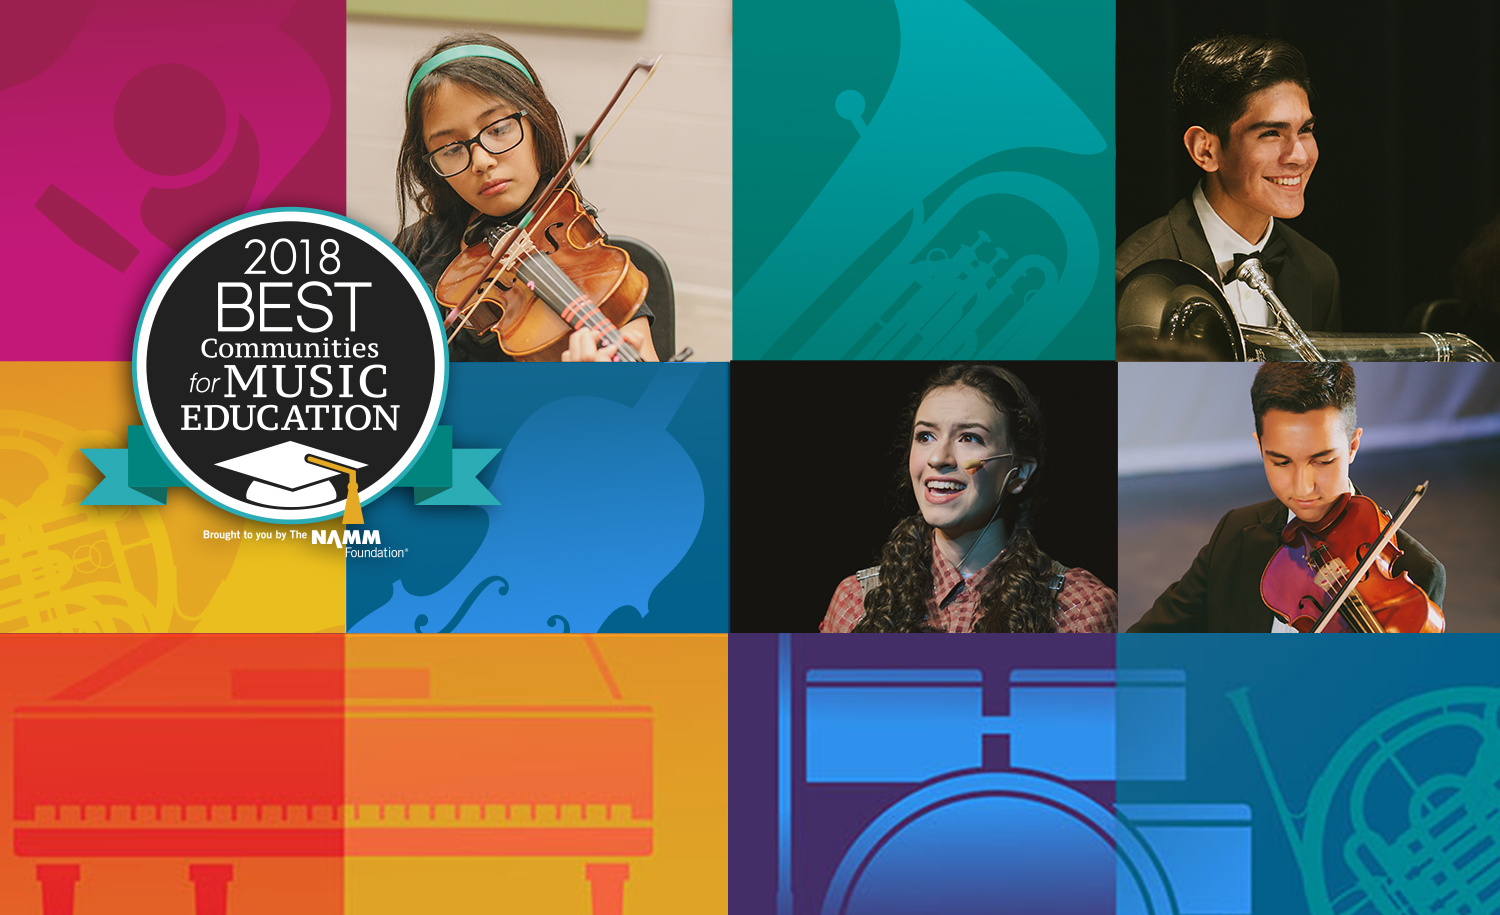 HCISD's Music Education Program receives national recognition